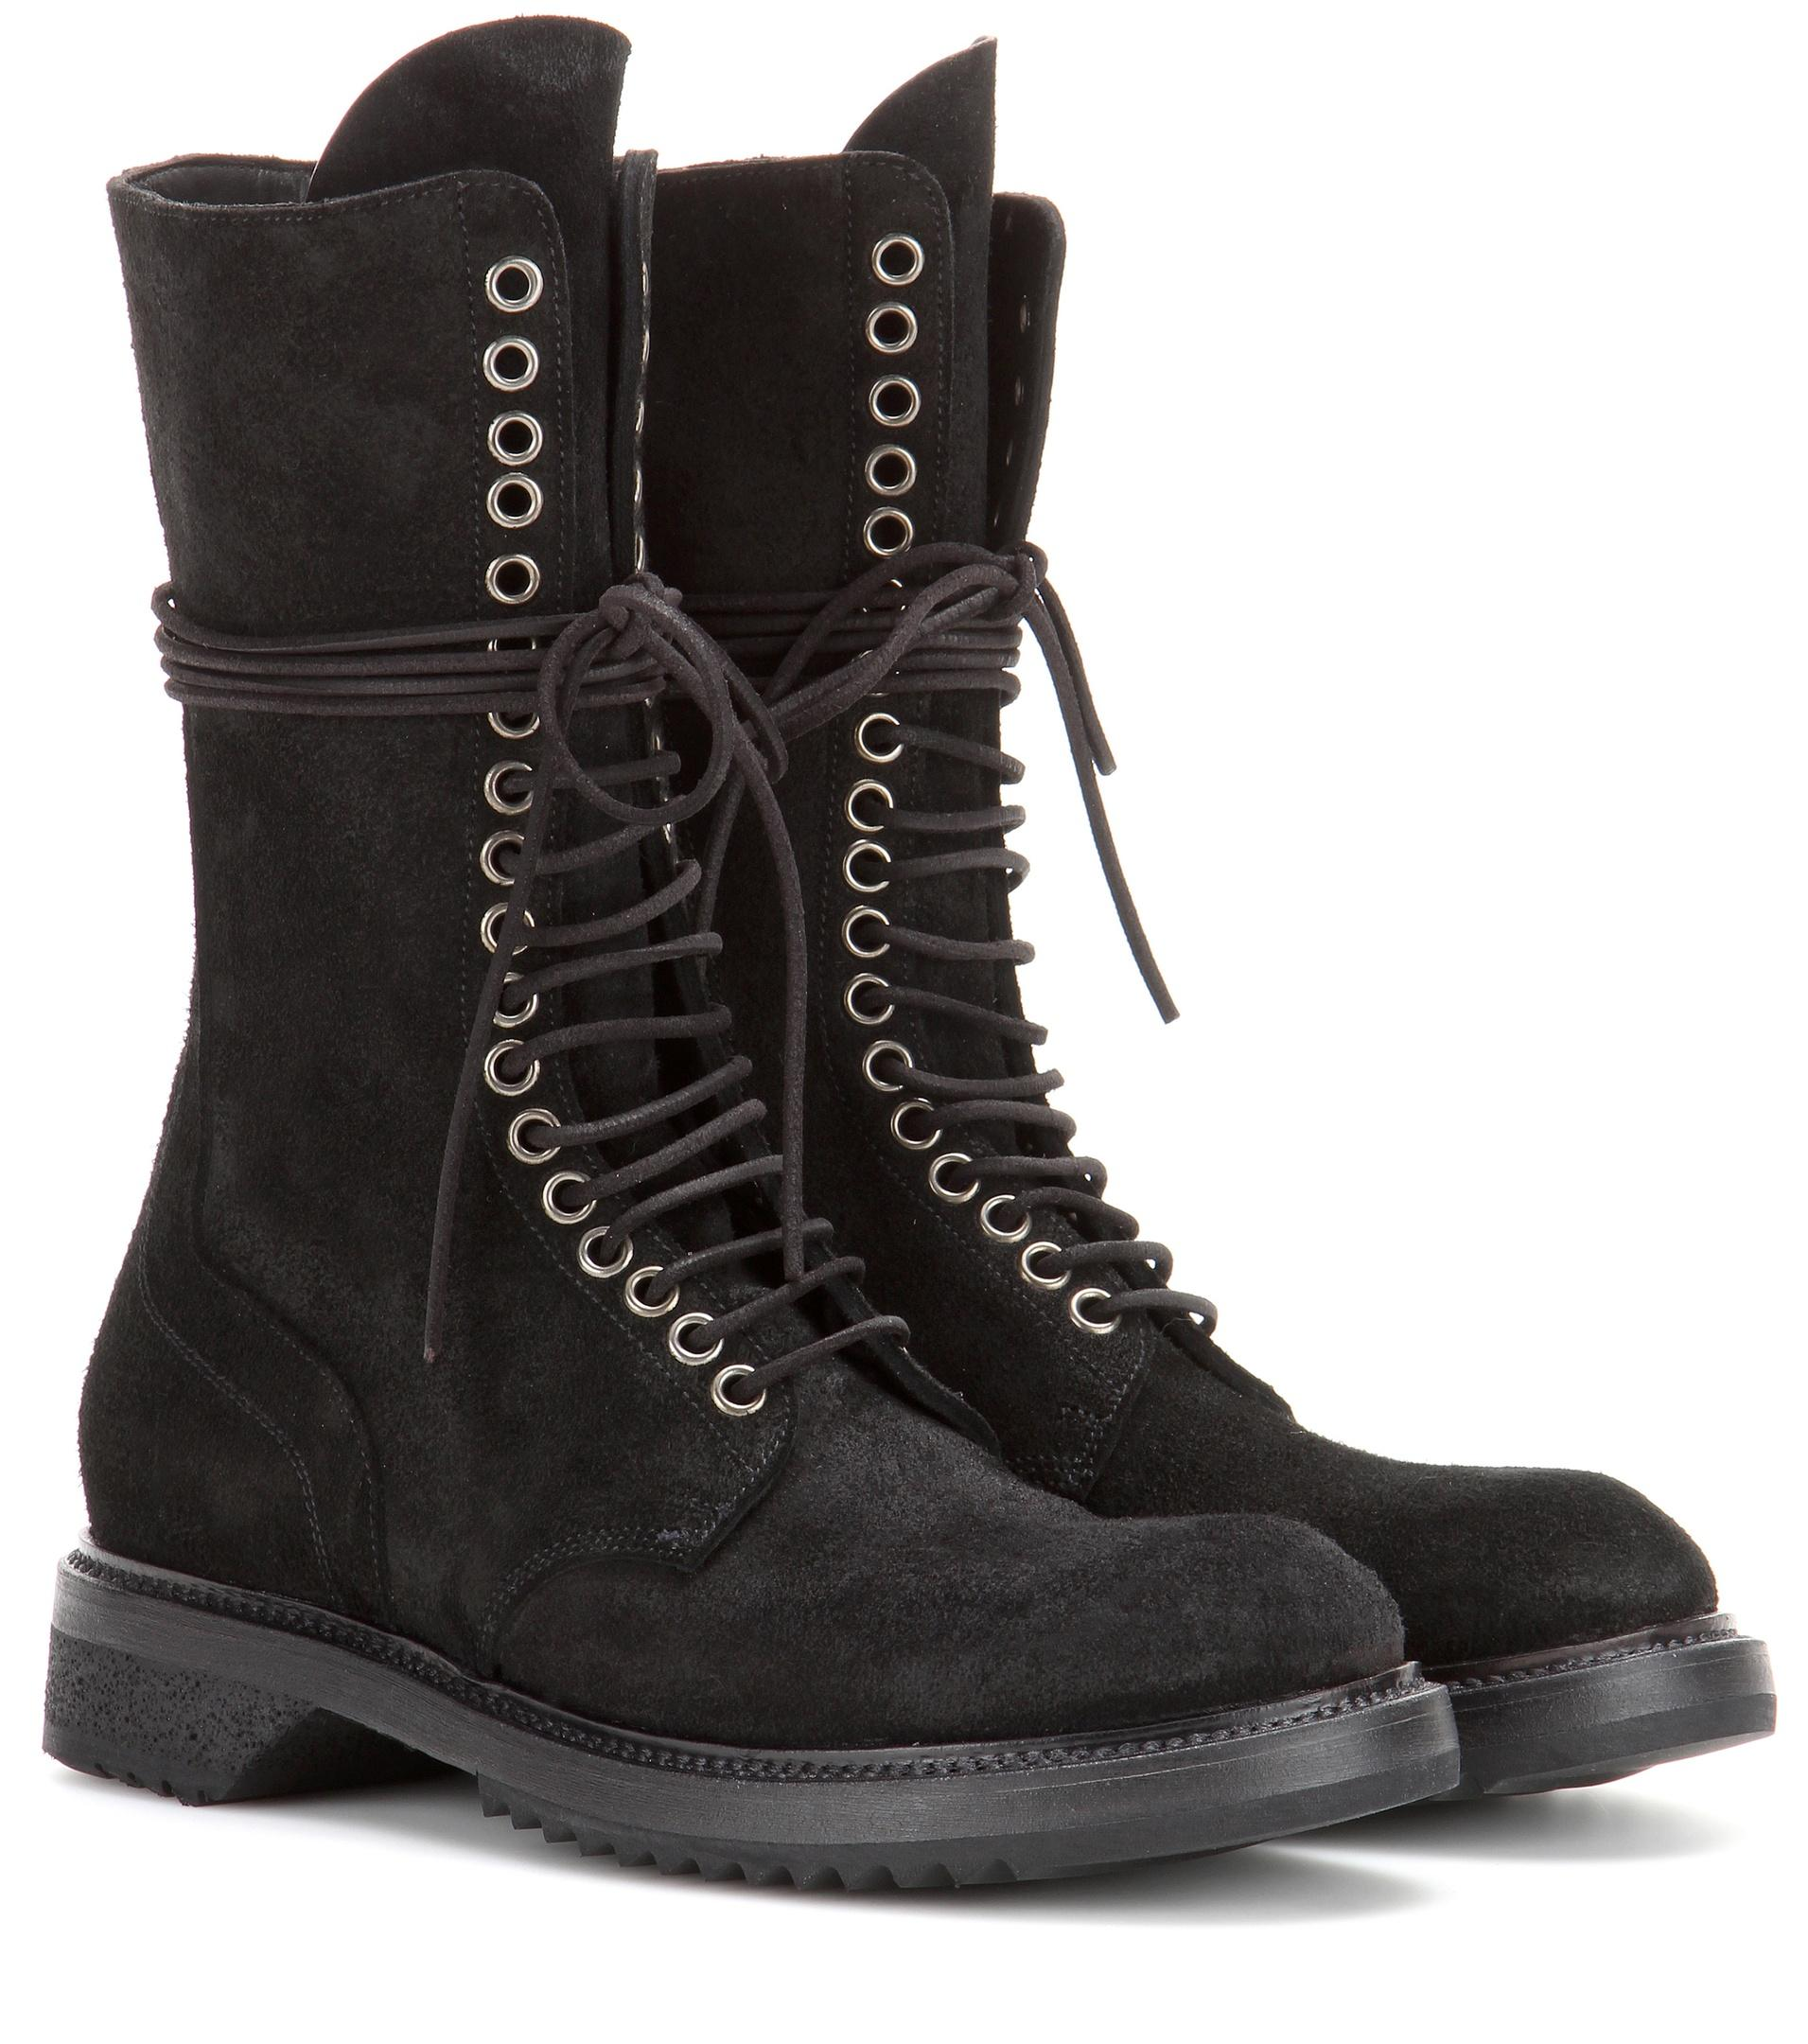 Rick owens Army Suede Boots in Black